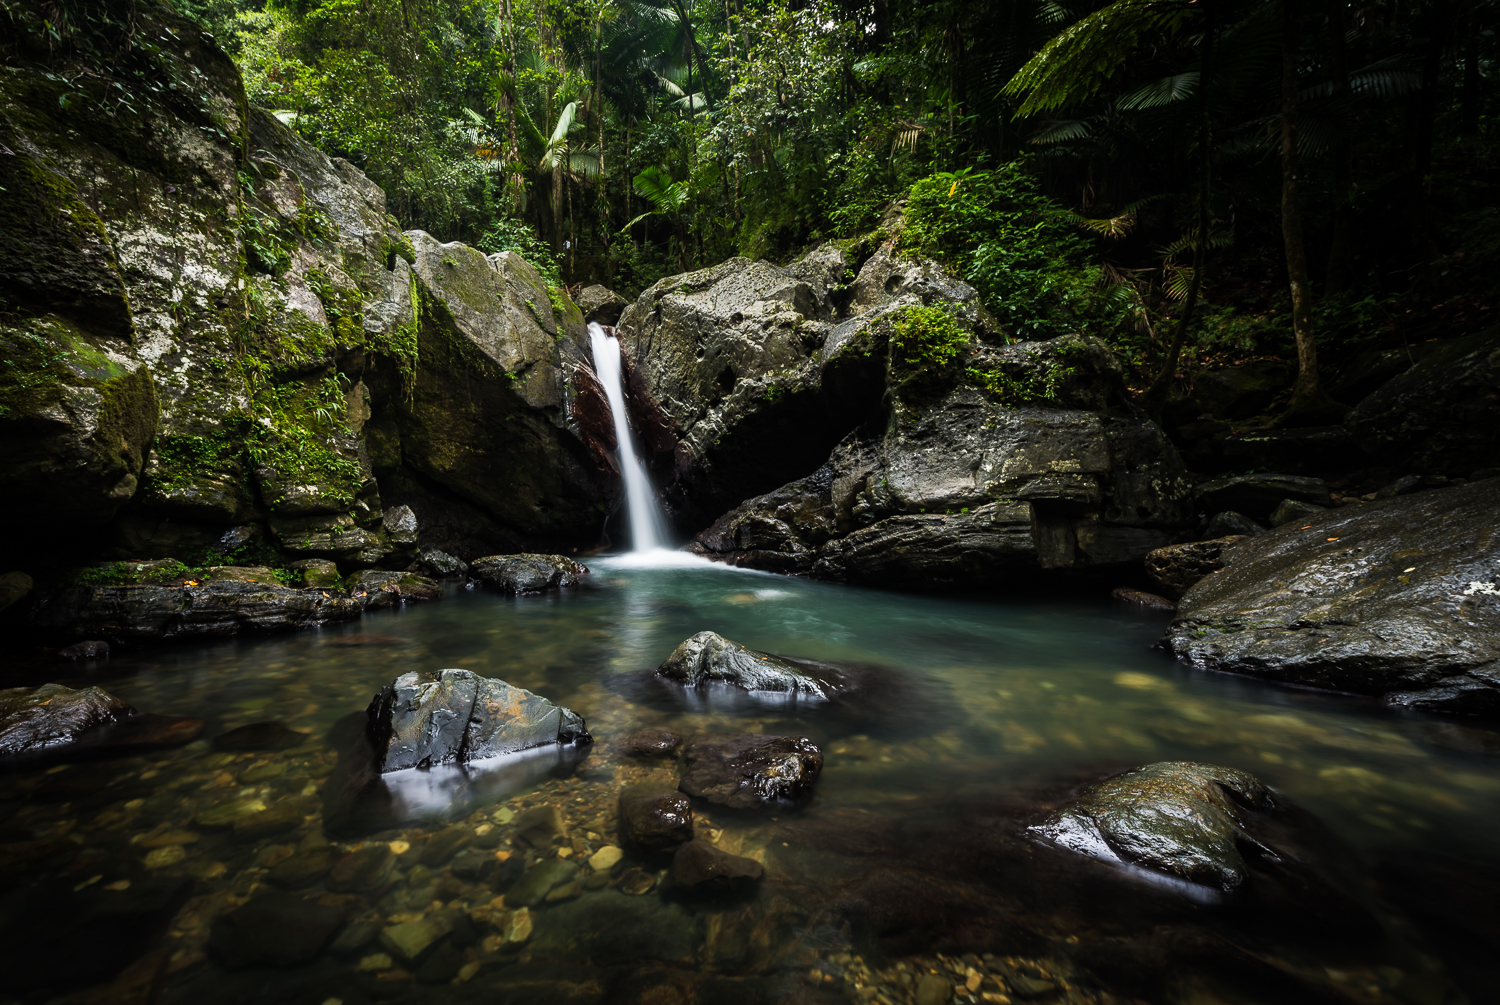 Cooling off in the El Yunque waterfalls is one of the fun things to do in Puerto Rico